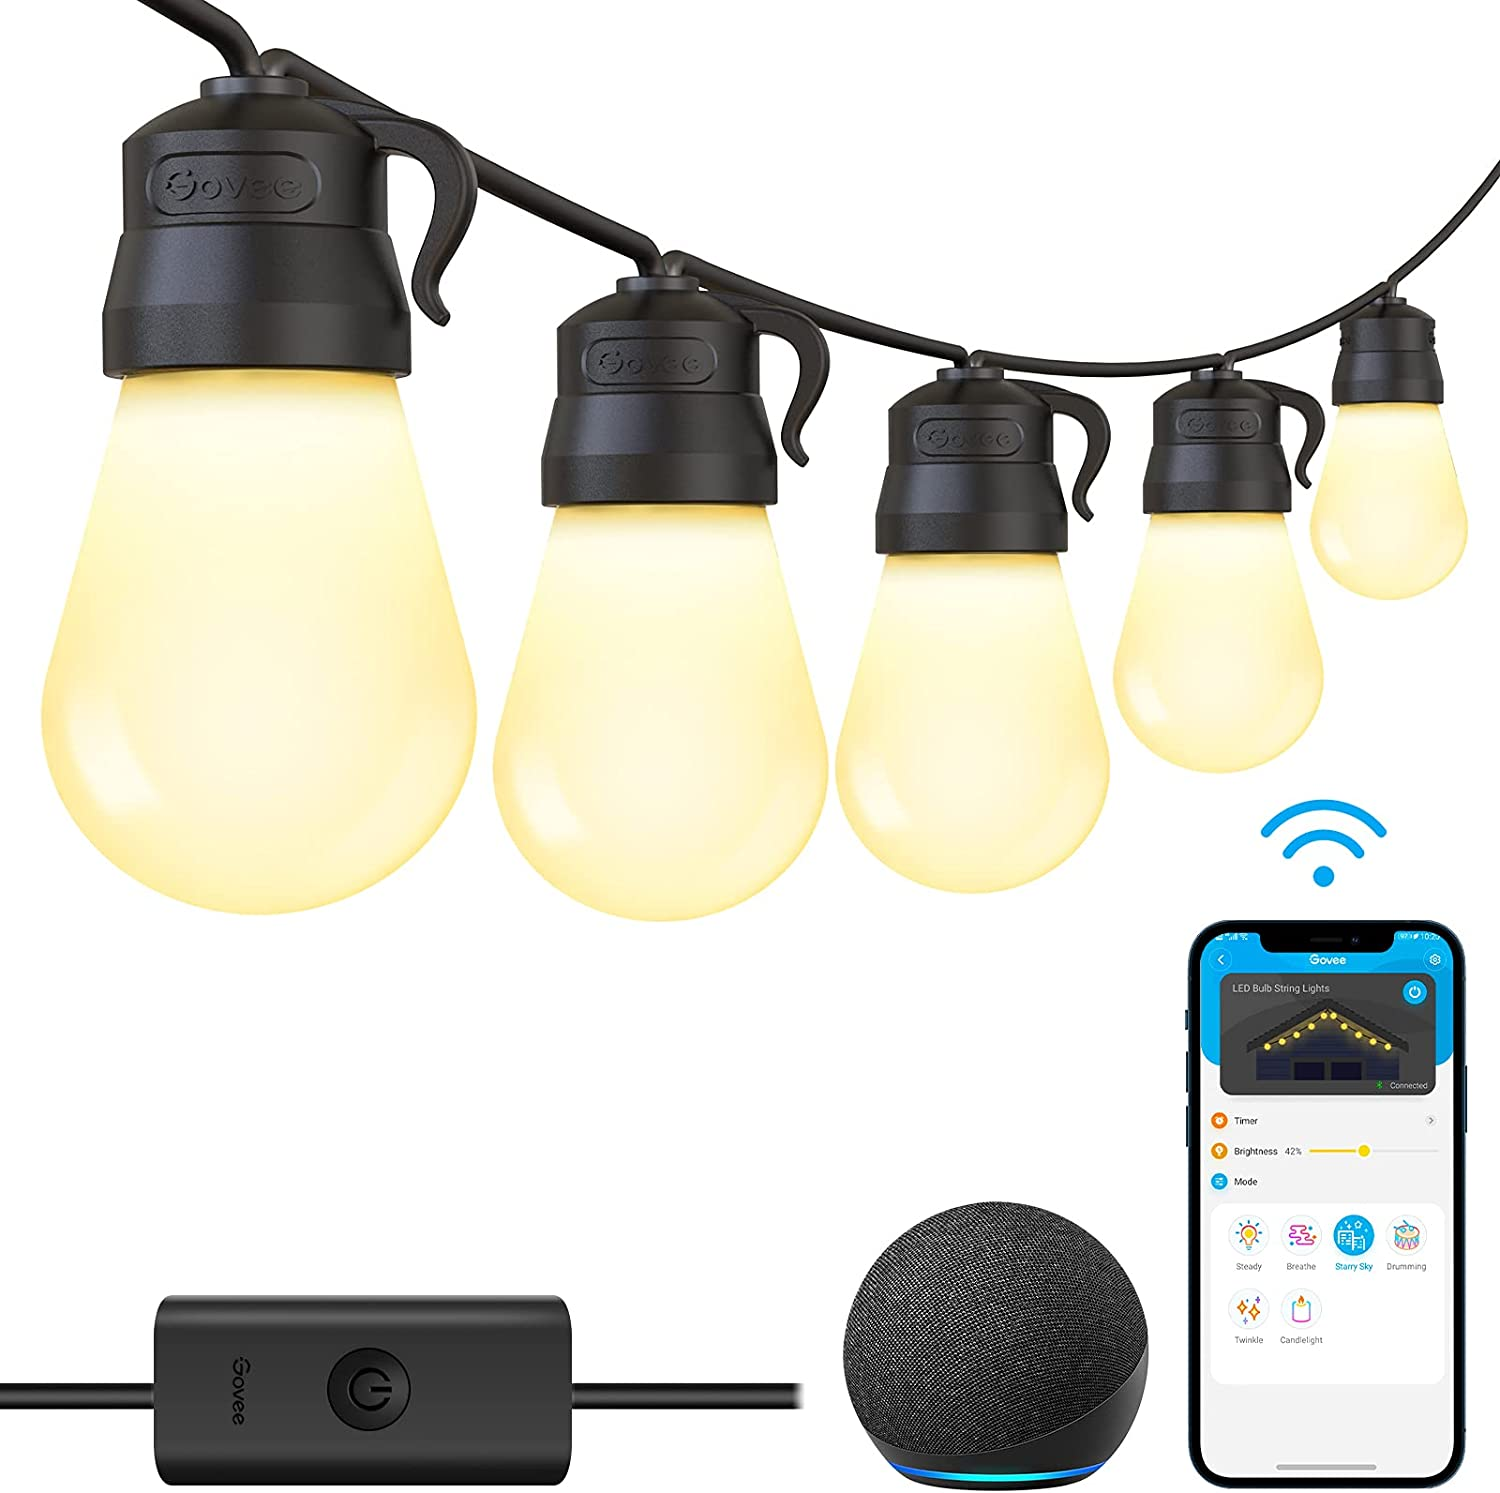 Govee 48ft Smart Wi-Fi Outdoor String Lights with Bluetooth App Control, Patio Lights Work with Alexa Google Assistant, 15 Dimmable Warm White LED Bulbs for Patio Decor, Waterproof and Shatterproof